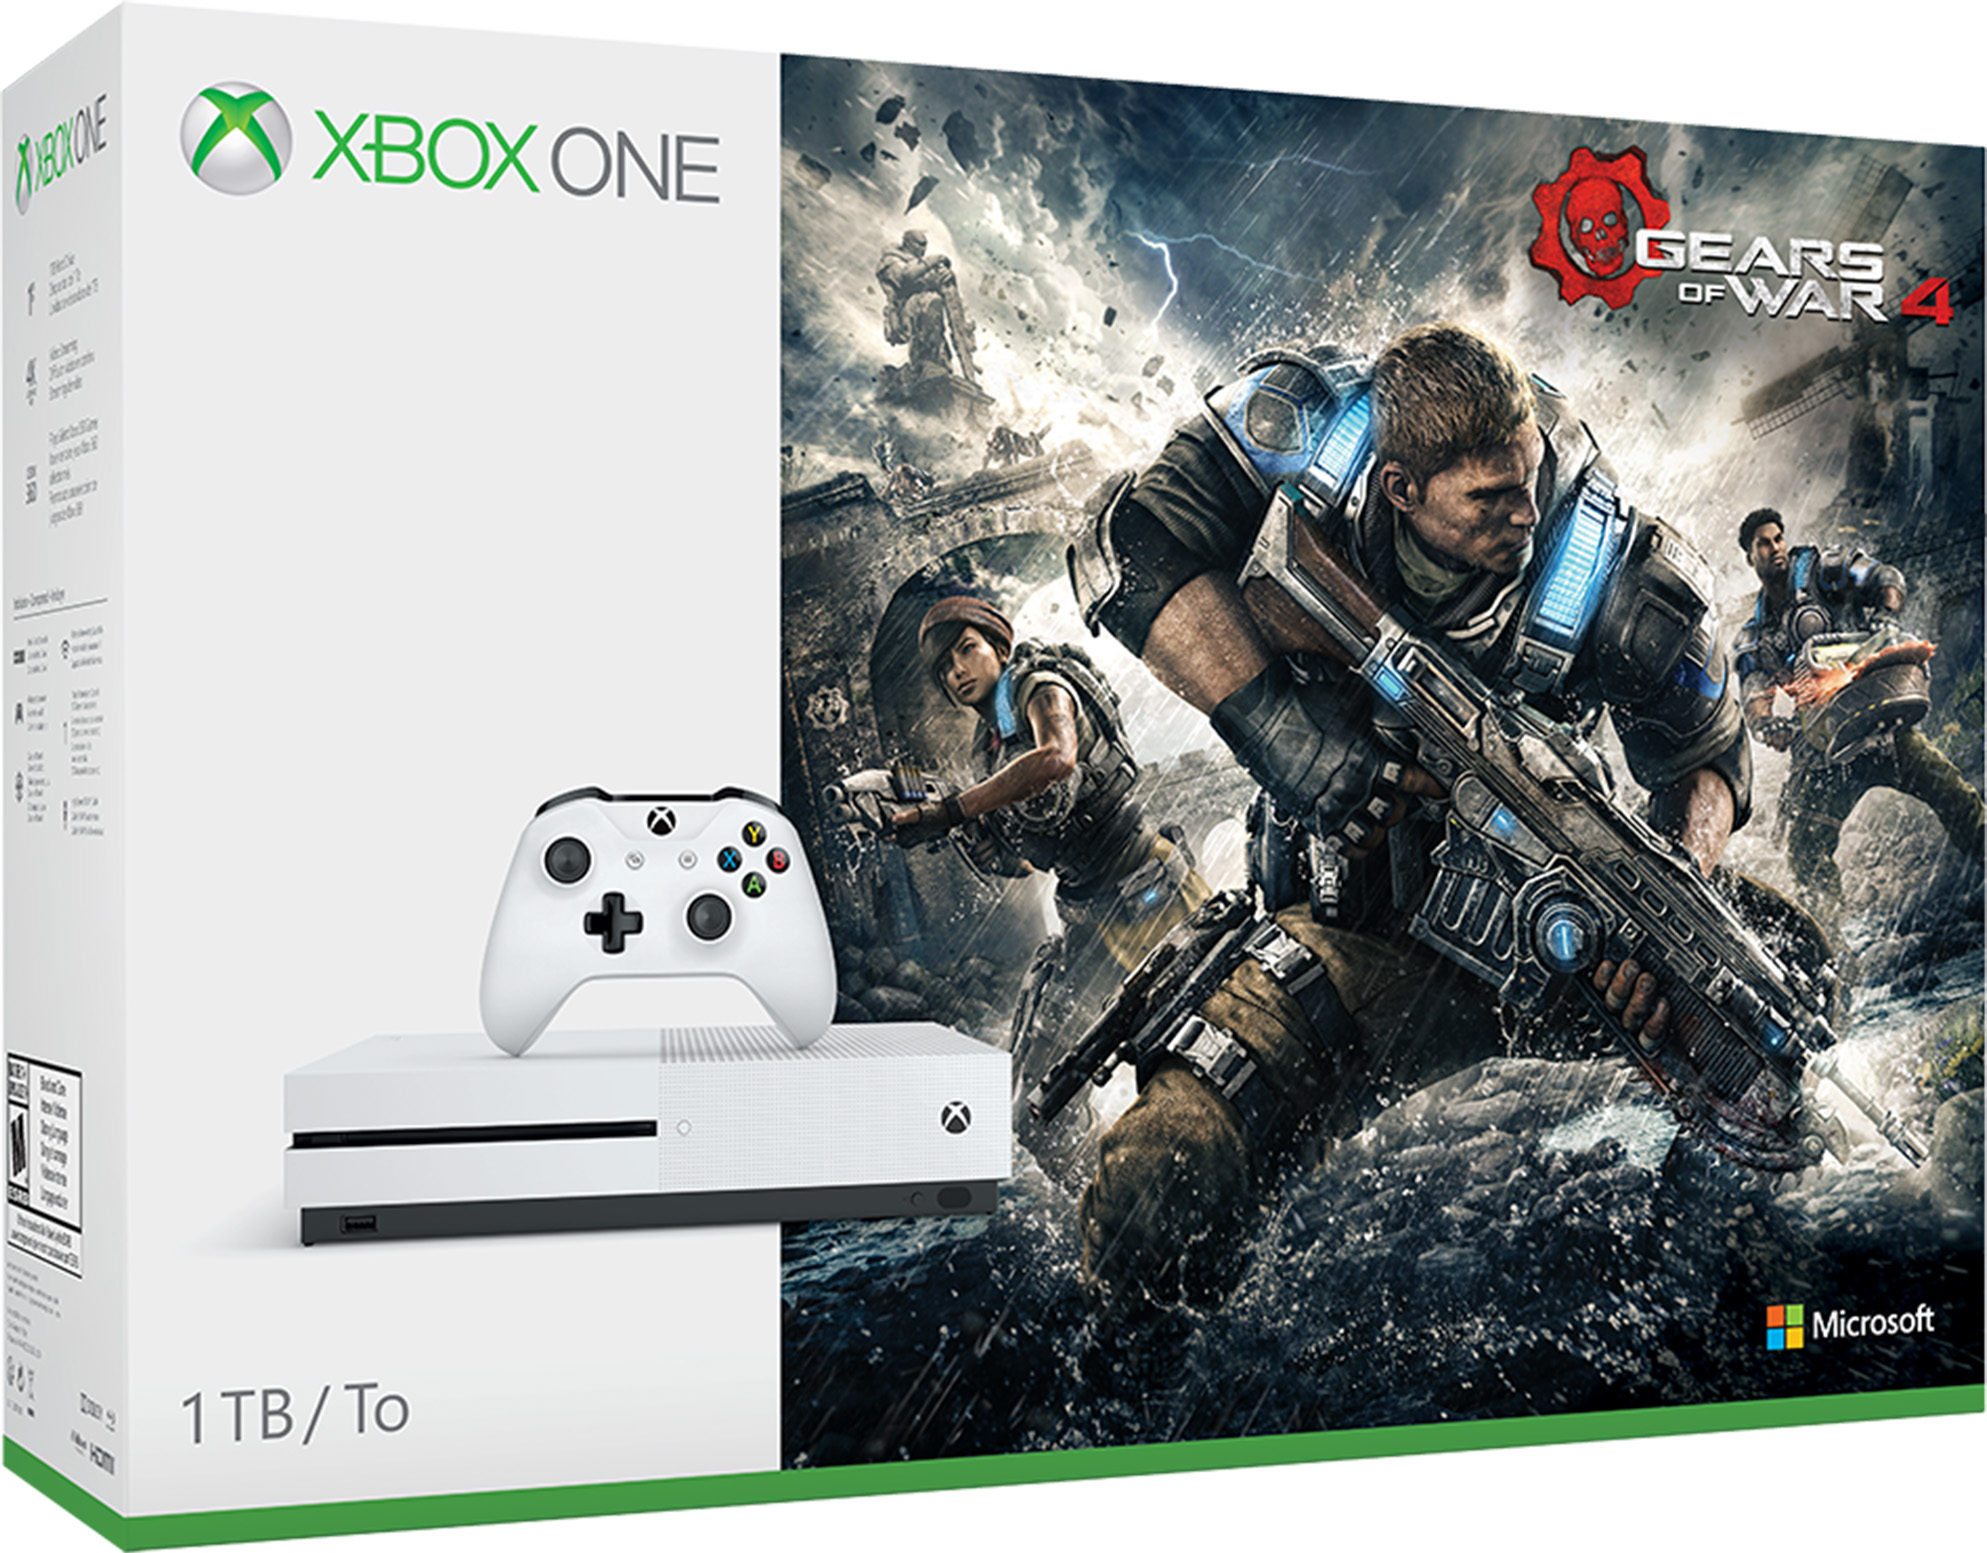 xbox-one-s-gears-of-war-4-bundle1tb